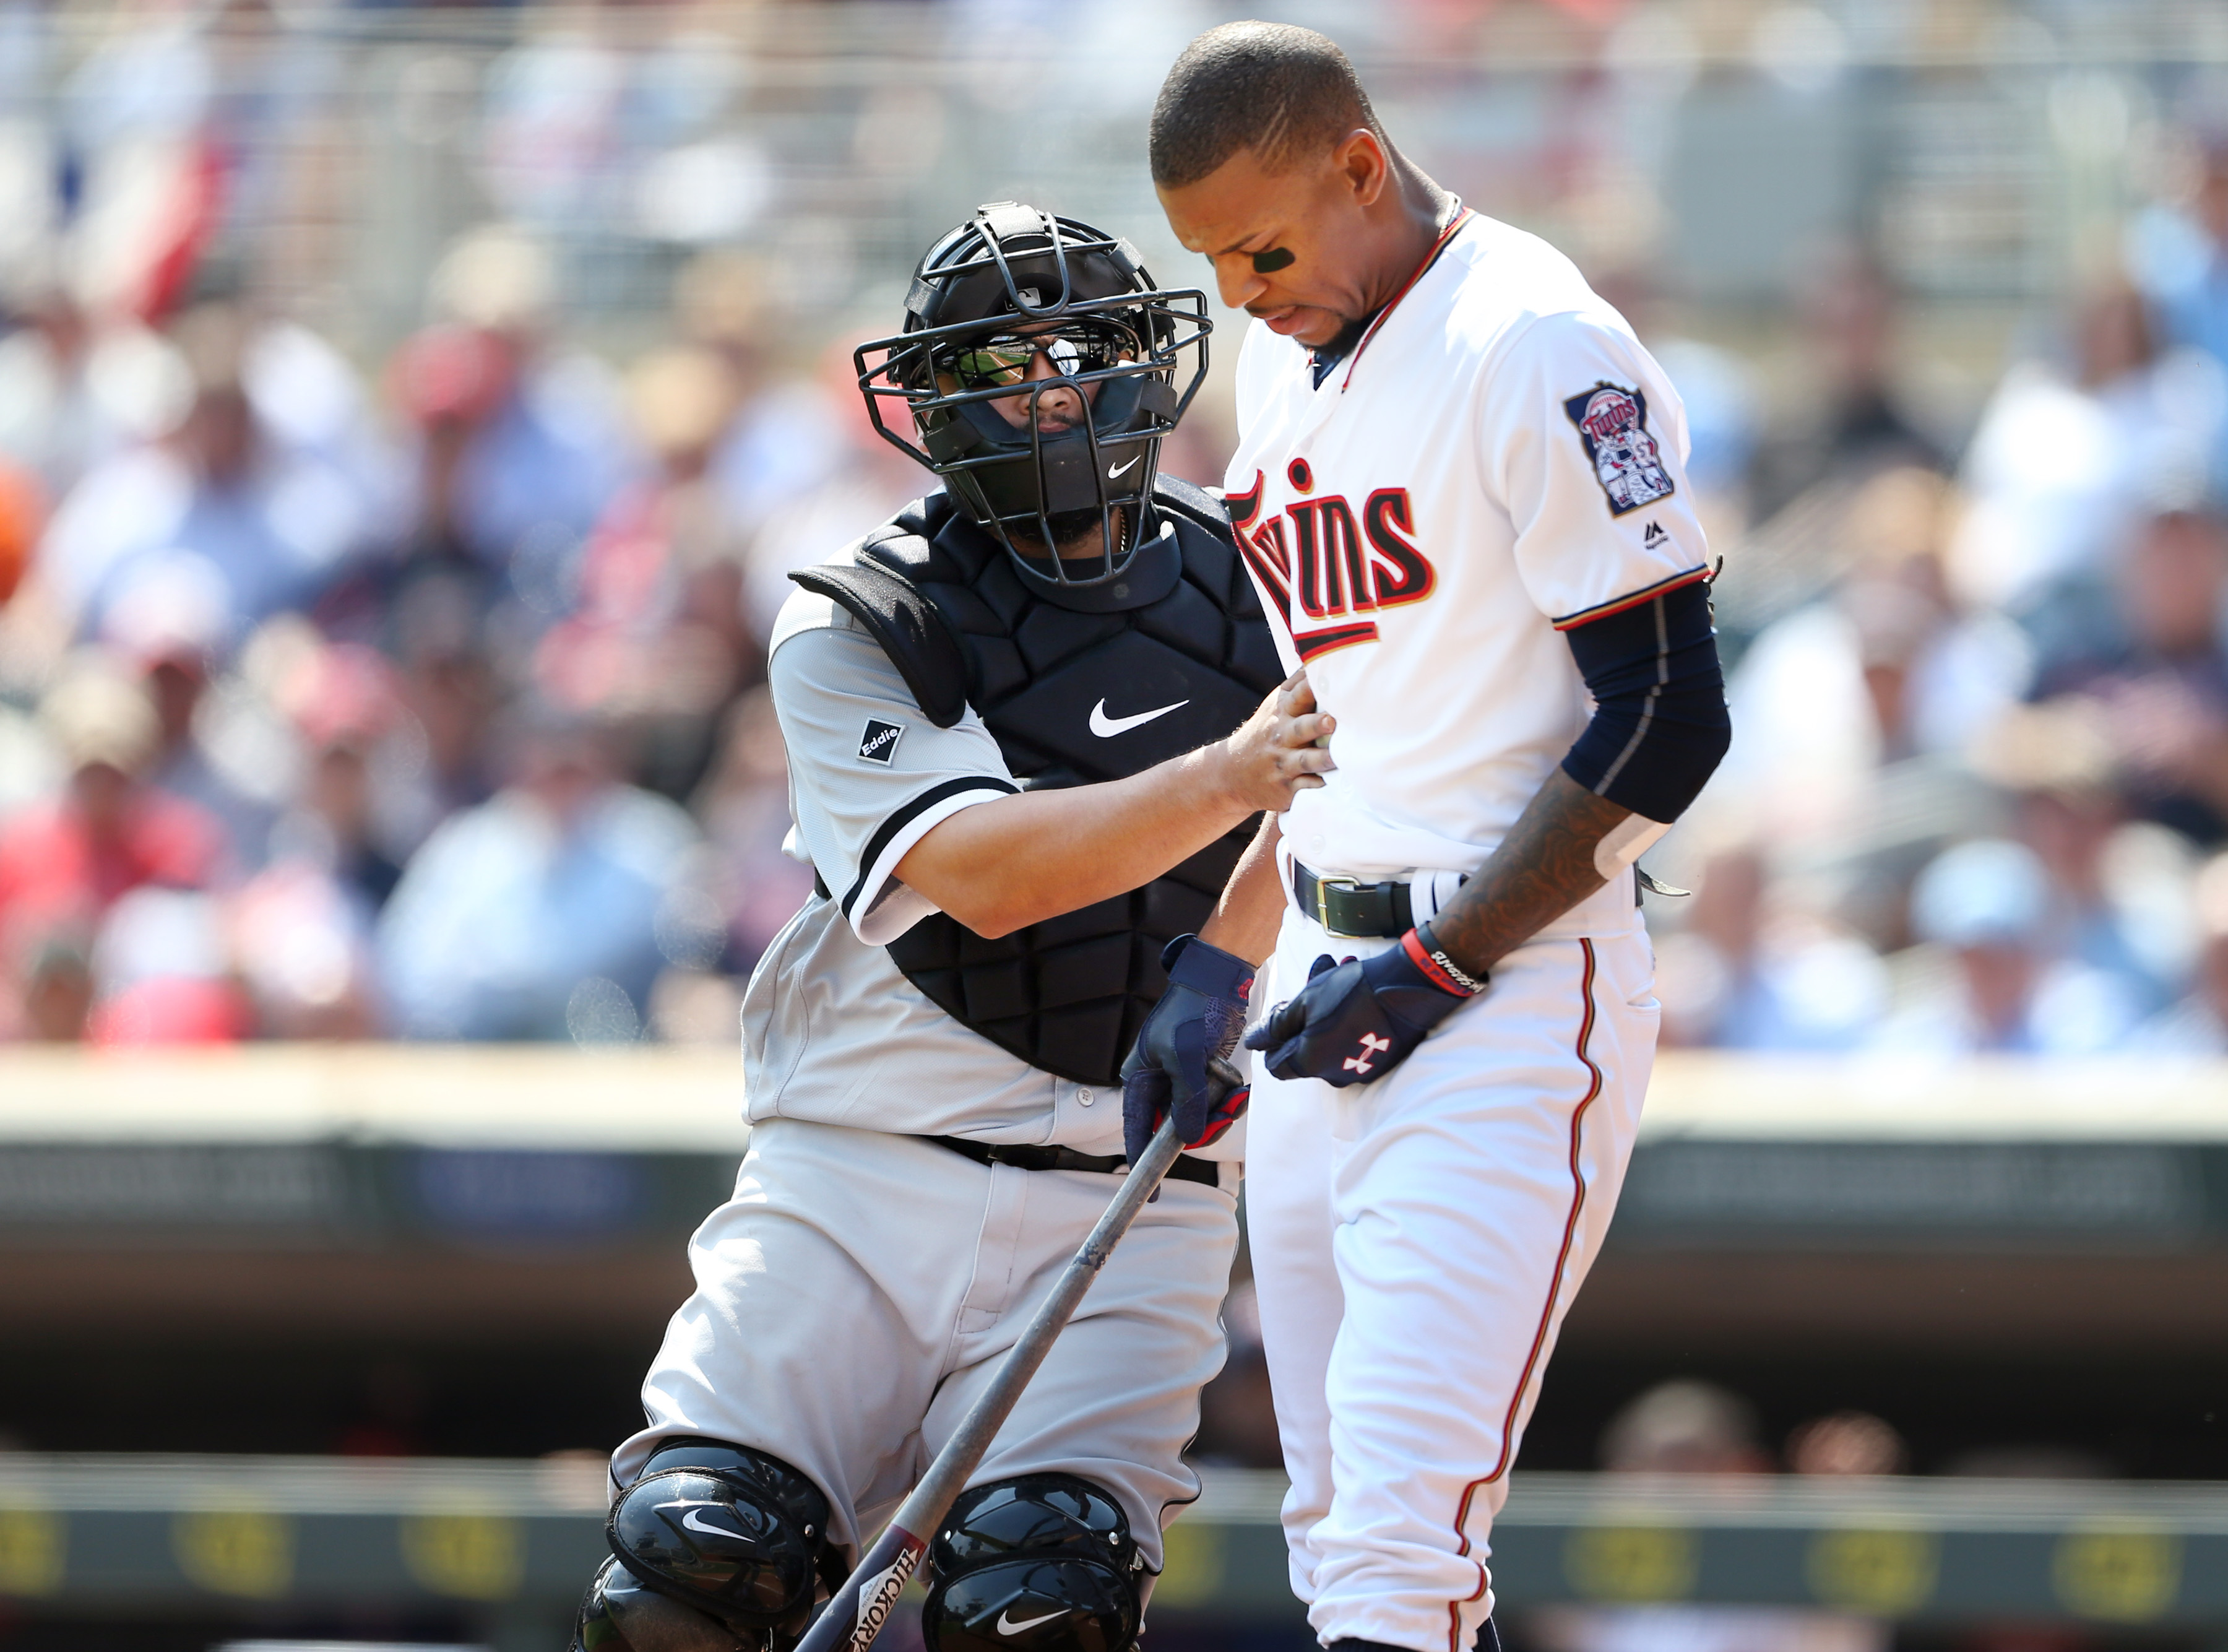 Chicago White Sox catcher Dioner Navarro assists Minnesota Twins' Byron Buxton  after Buxton was hit by a pitch thrown by Mat Latos in the third inning of a baseball game at Target Field, Thursday April 14, 2016, in Minneapolis, Minn. (Jerry Holt Jerry/St